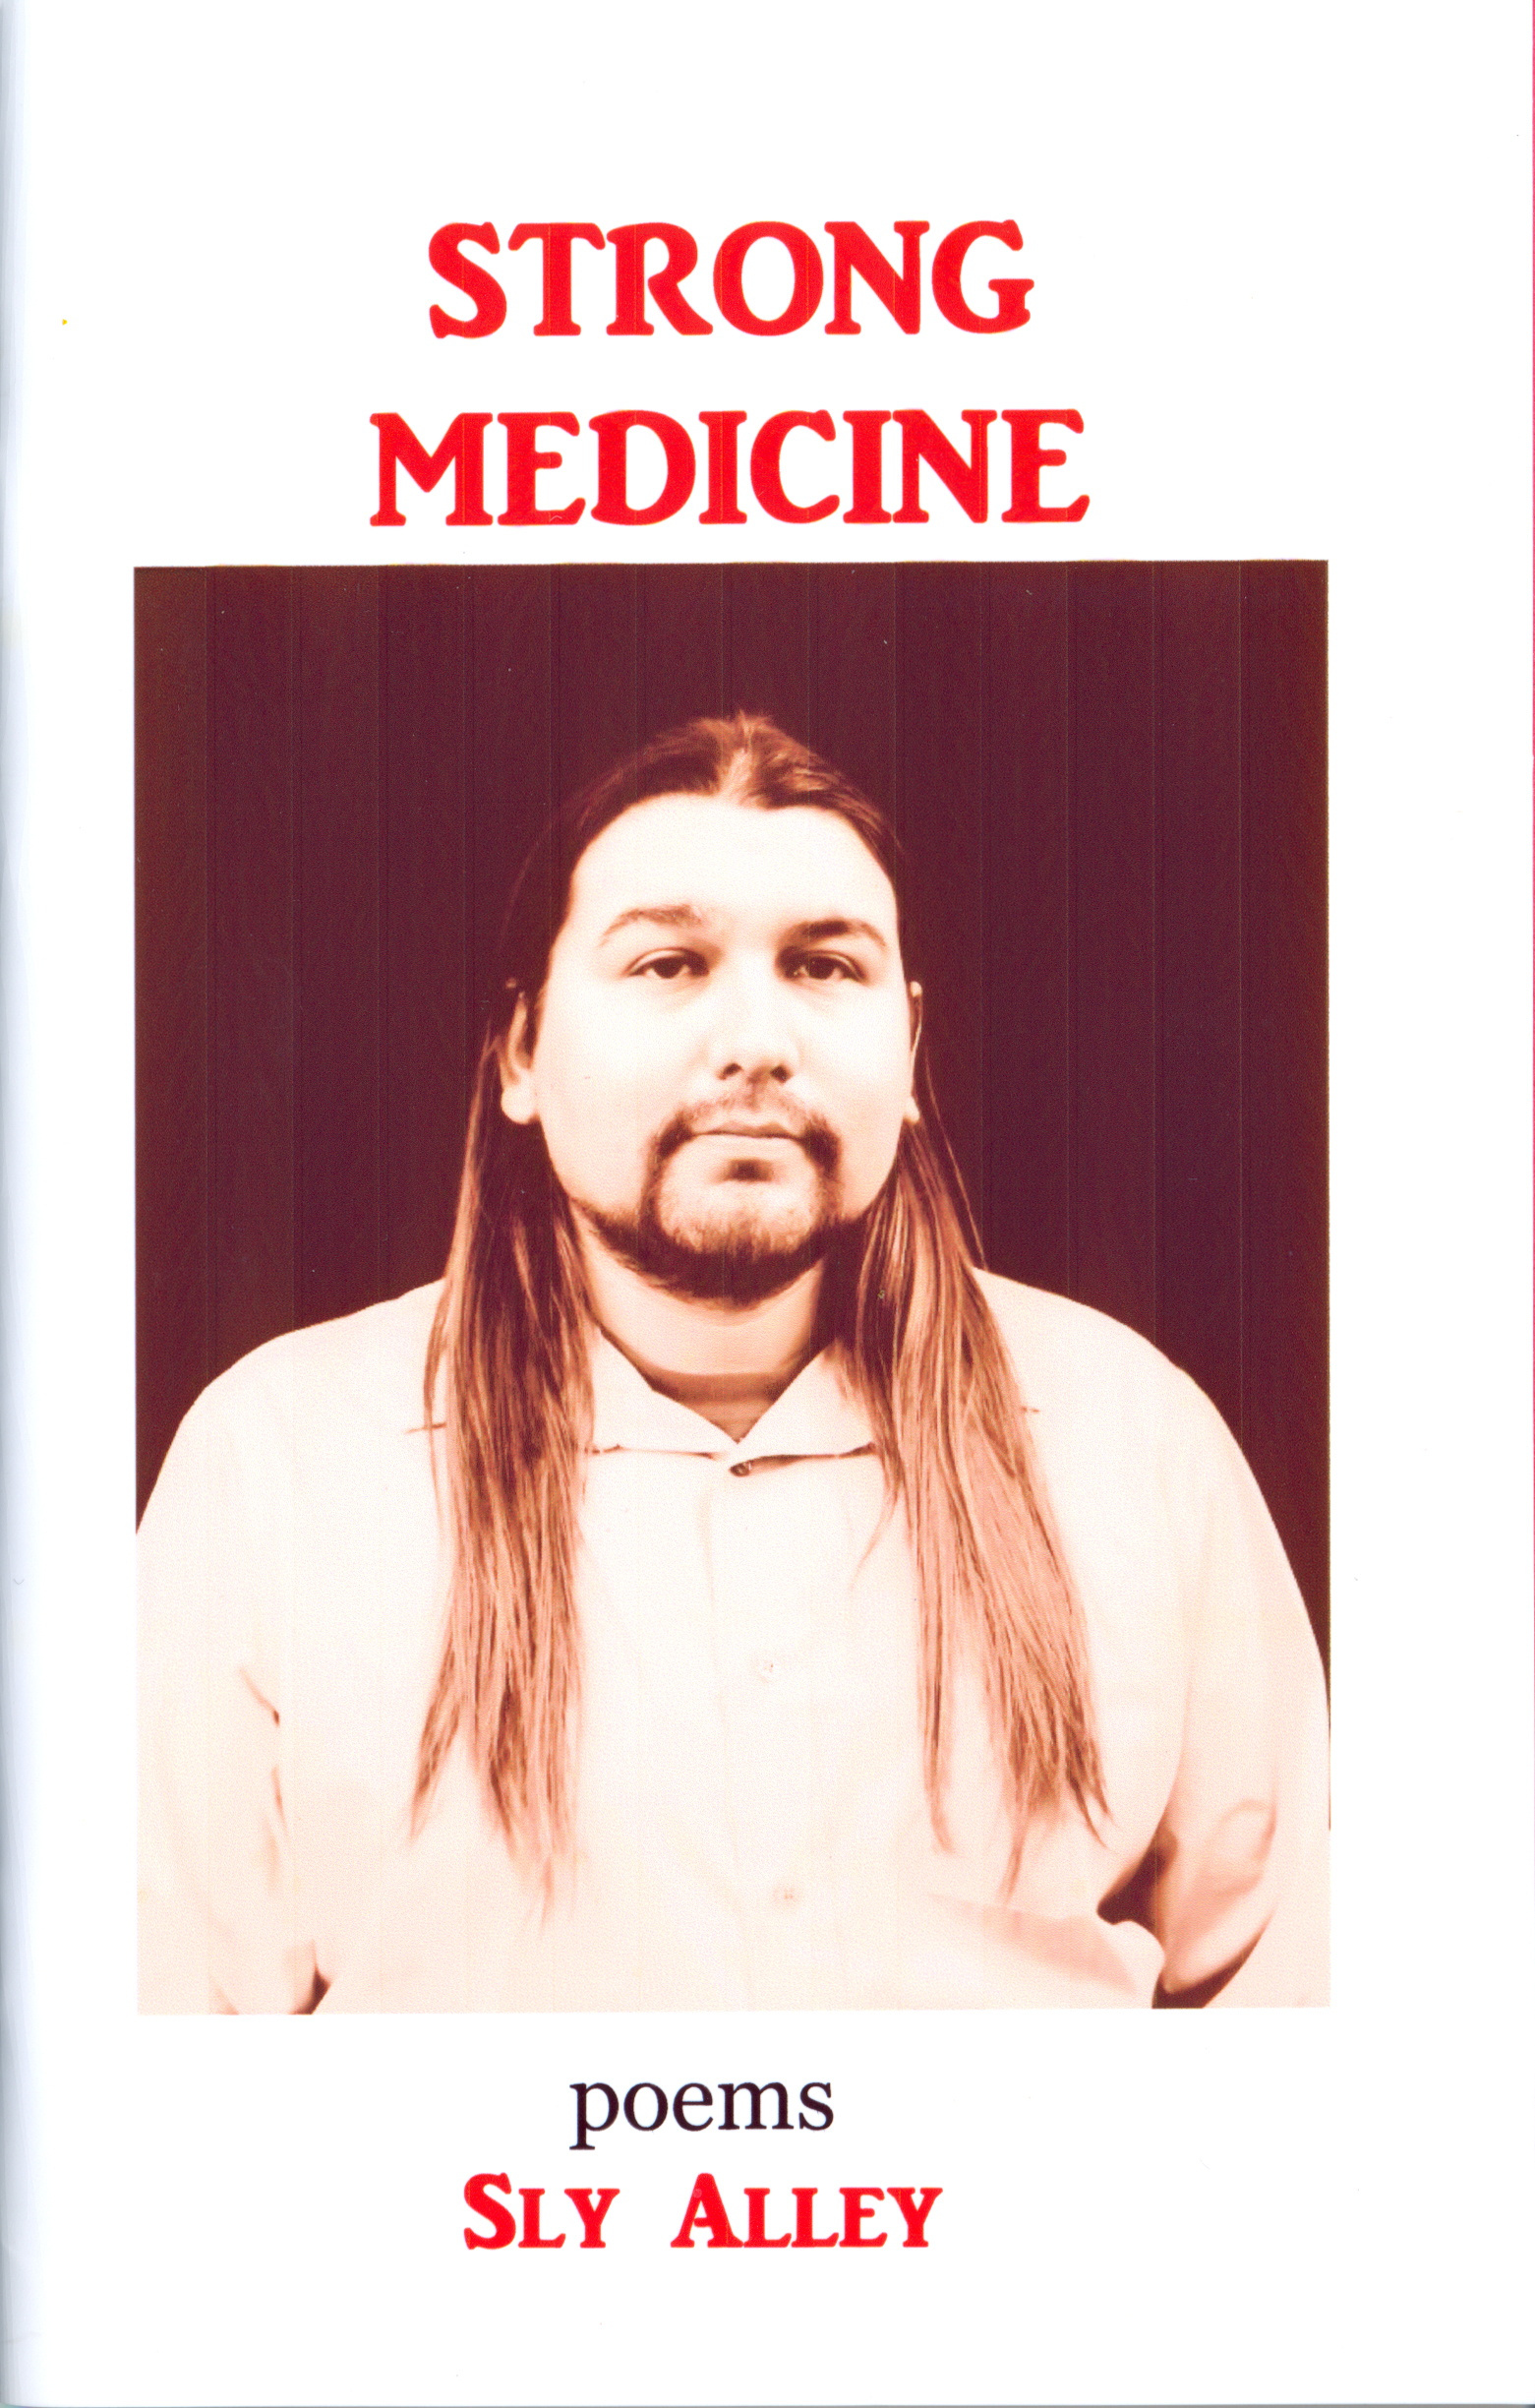 Strong Medicine bookcover